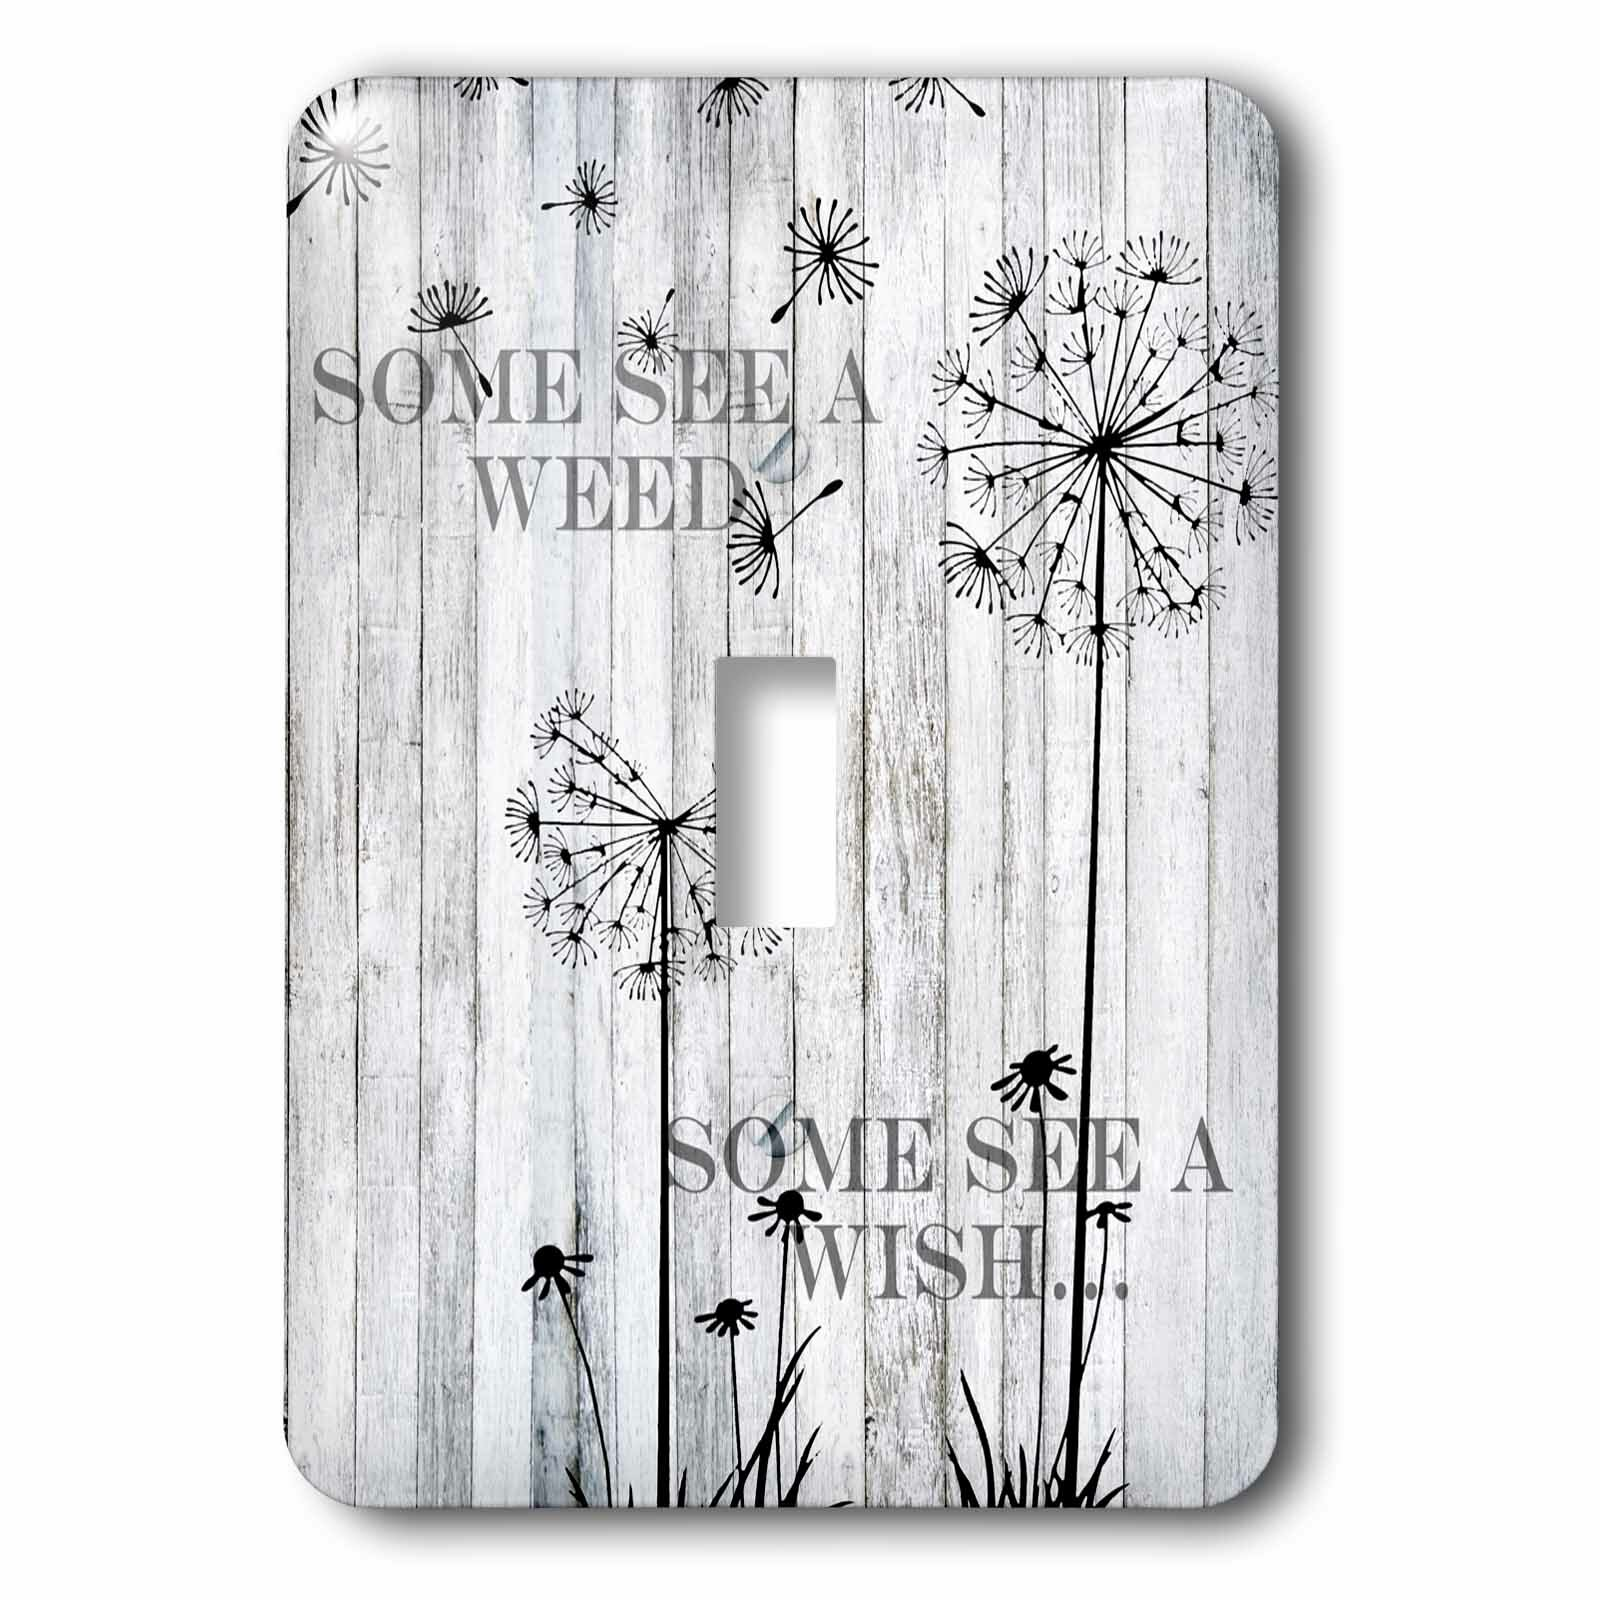 3drose Quotes Saying Dandelion 1 Gang Toggle Light Switch Wall Plate Wayfair